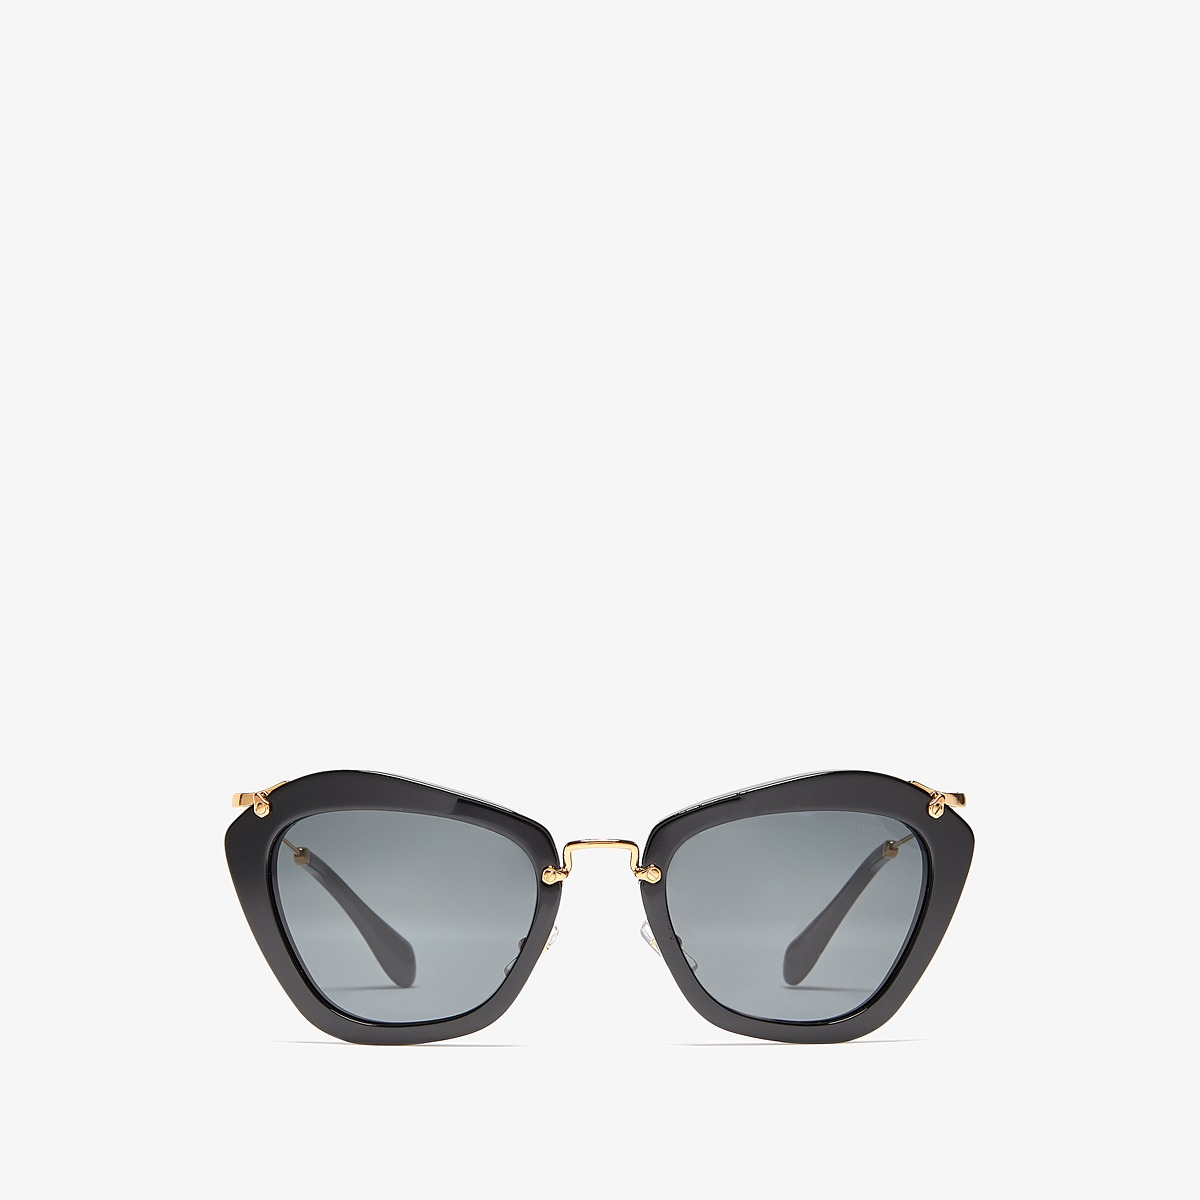 Miu Miu 0MU 10NS Black/Grey Gradient Fashion Sunglasses